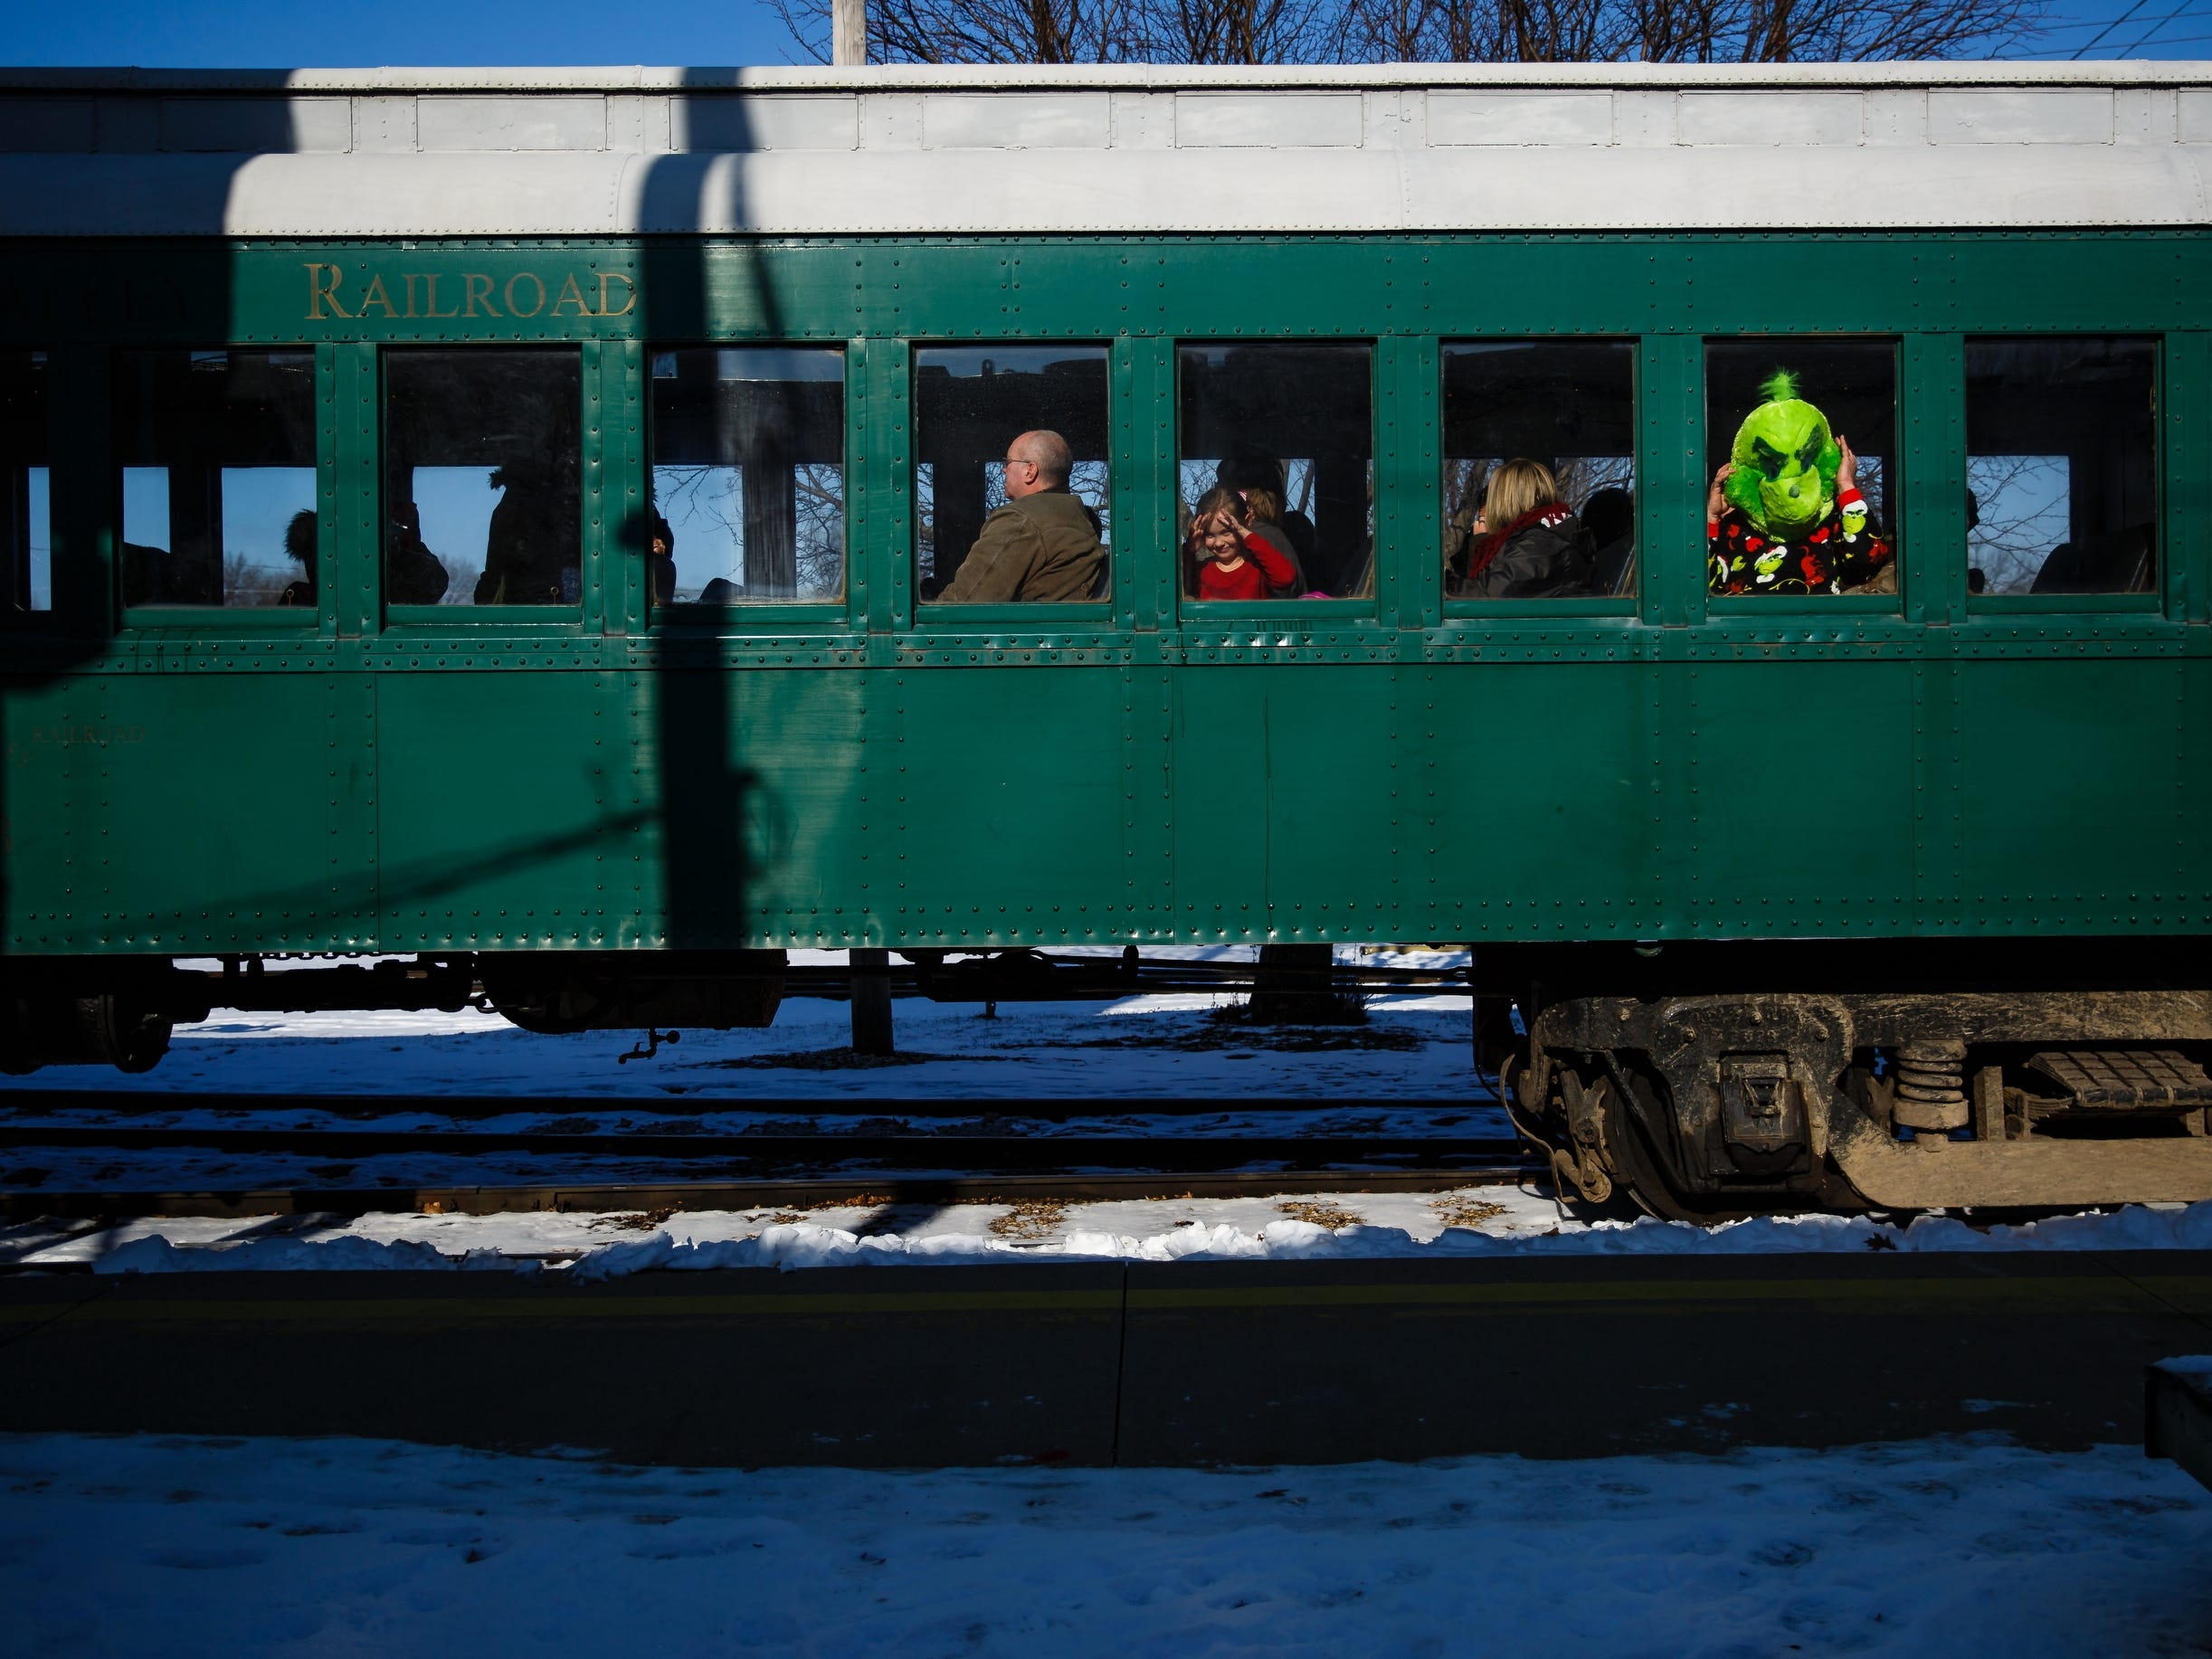 Sam Schneider, 7, Shell rock, looks out the window as Henry Knapp of Panora, dressed as the Grinch, finds his seat on the Santa Express train at the Boone and Scenic Valley Railroads on Saturday, Dec. 8, 2018, in Boone.